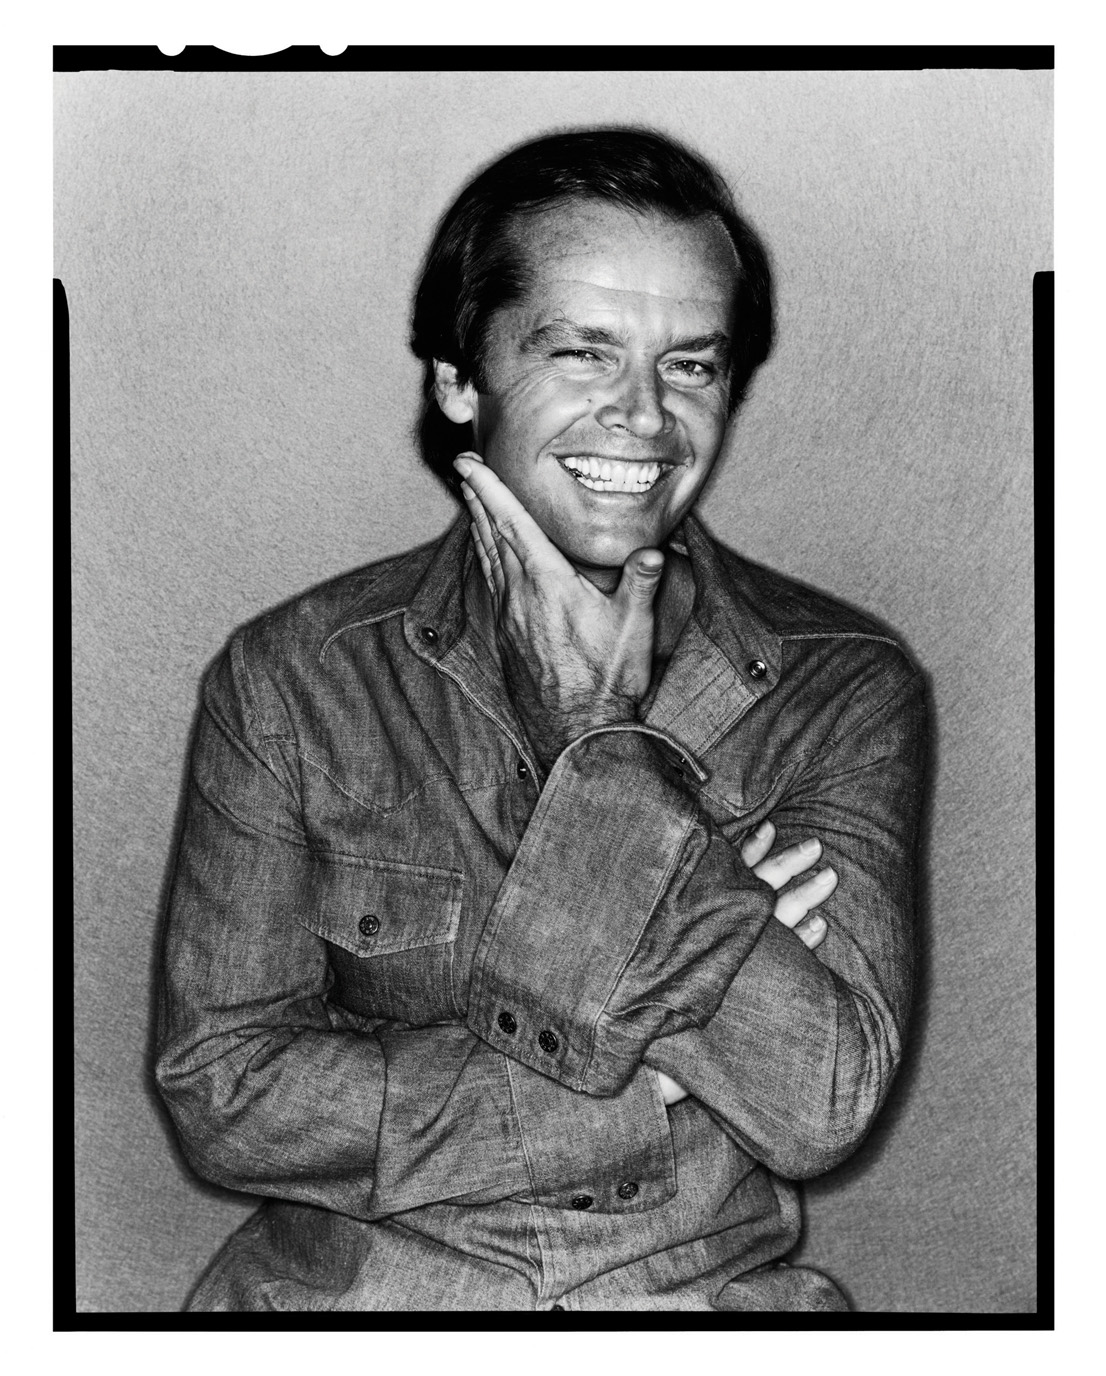 Jack Nicholson by David Bailey, 1978 © David Bailey